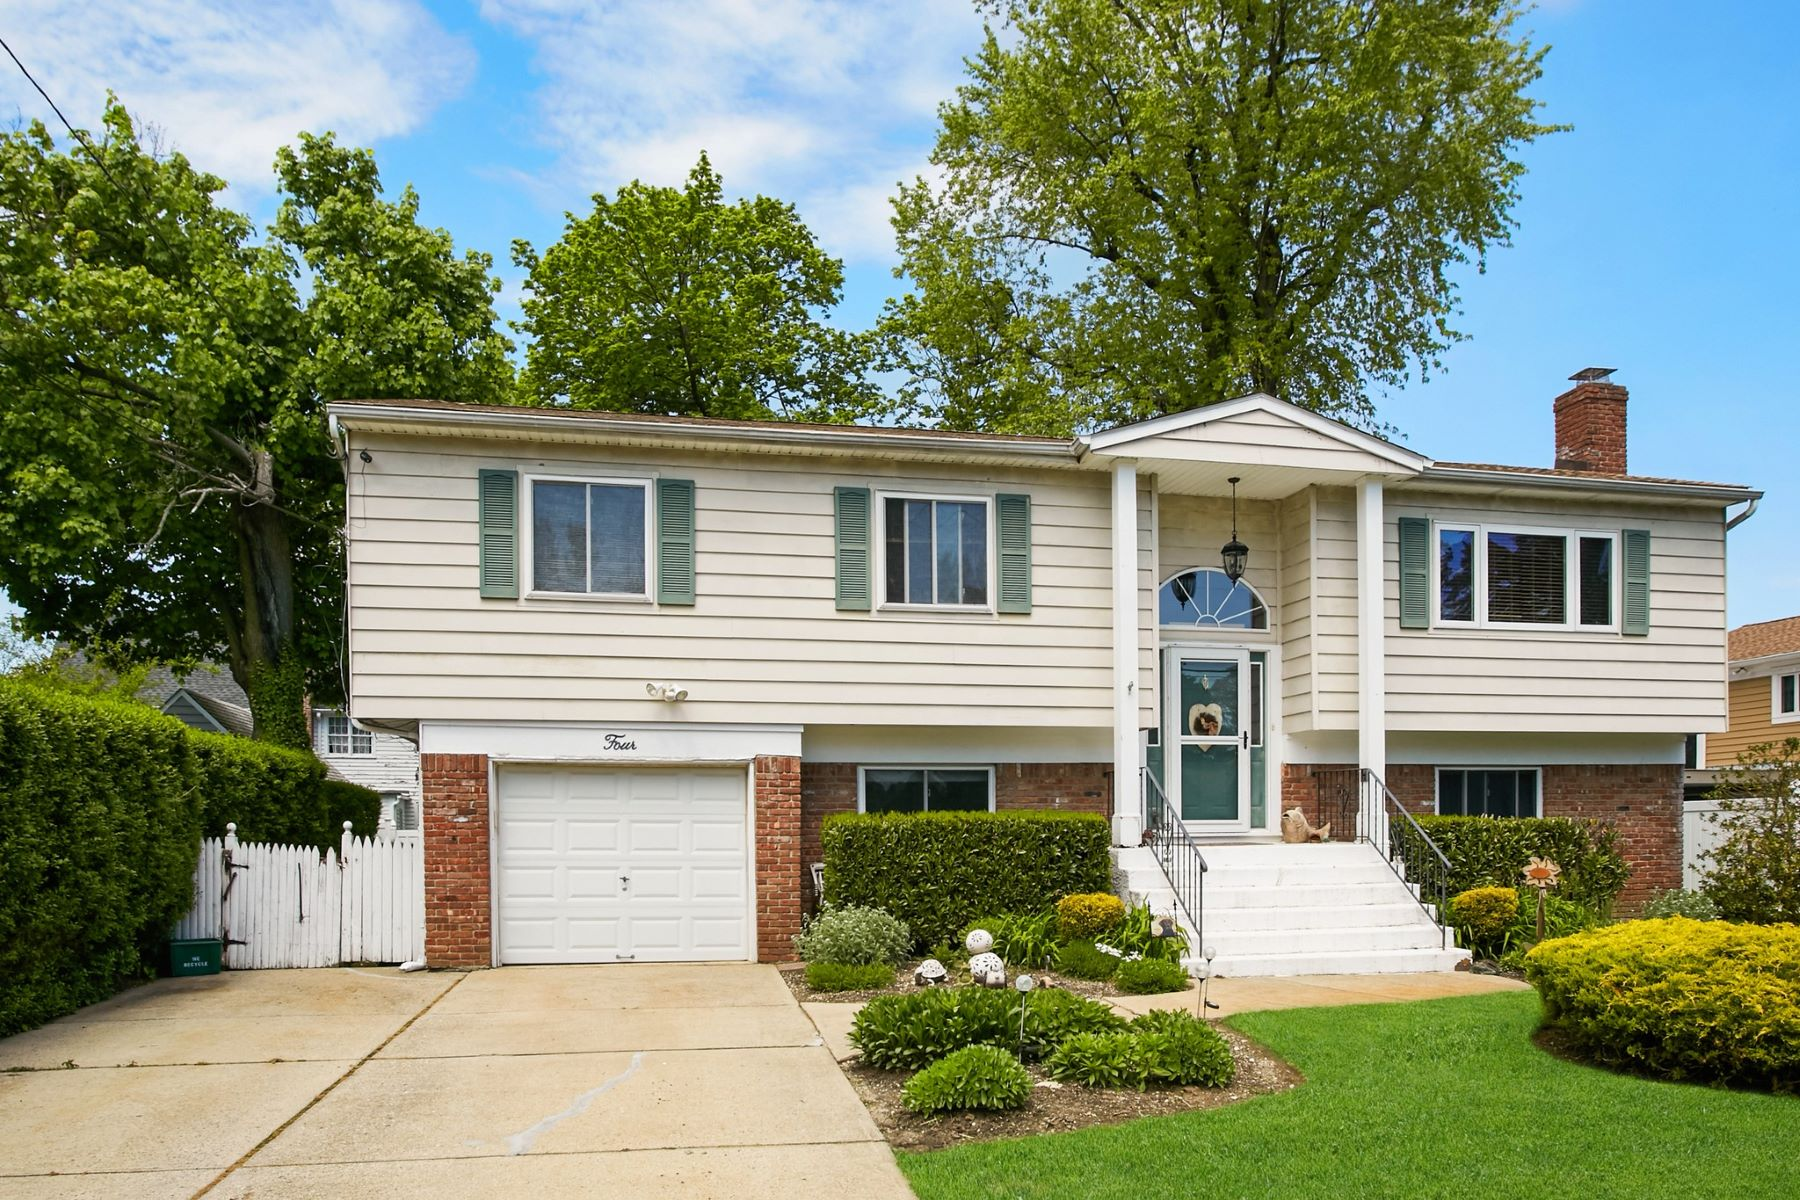 Single Family Homes for Active at Glenwood Landing 4 1st St Glenwood Landing, New York 11547 United States